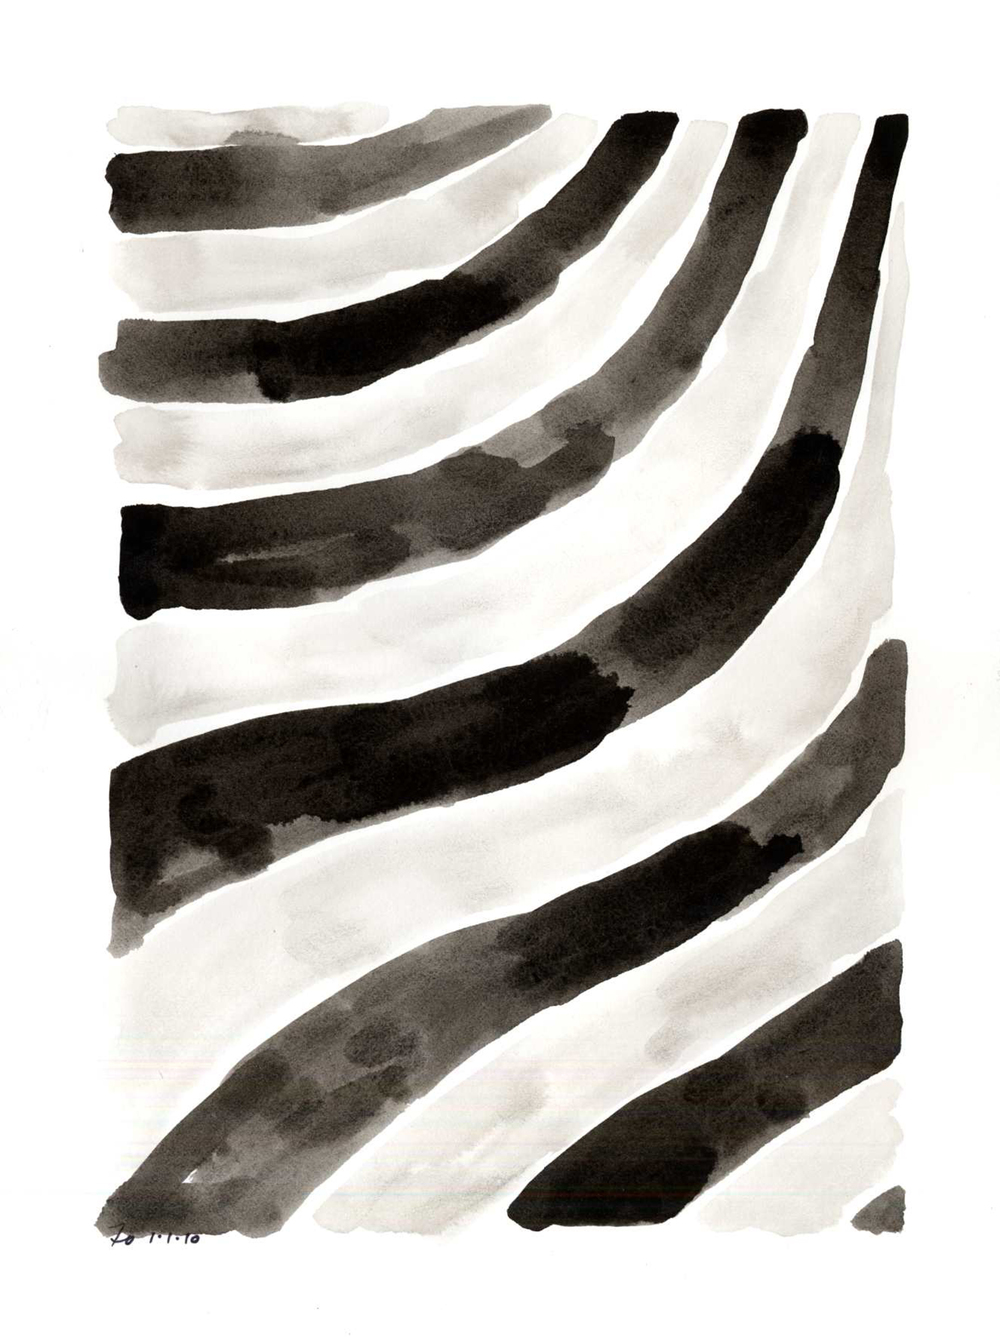 ii10_08  , 2008, india ink on paper, 12 x 9 in.